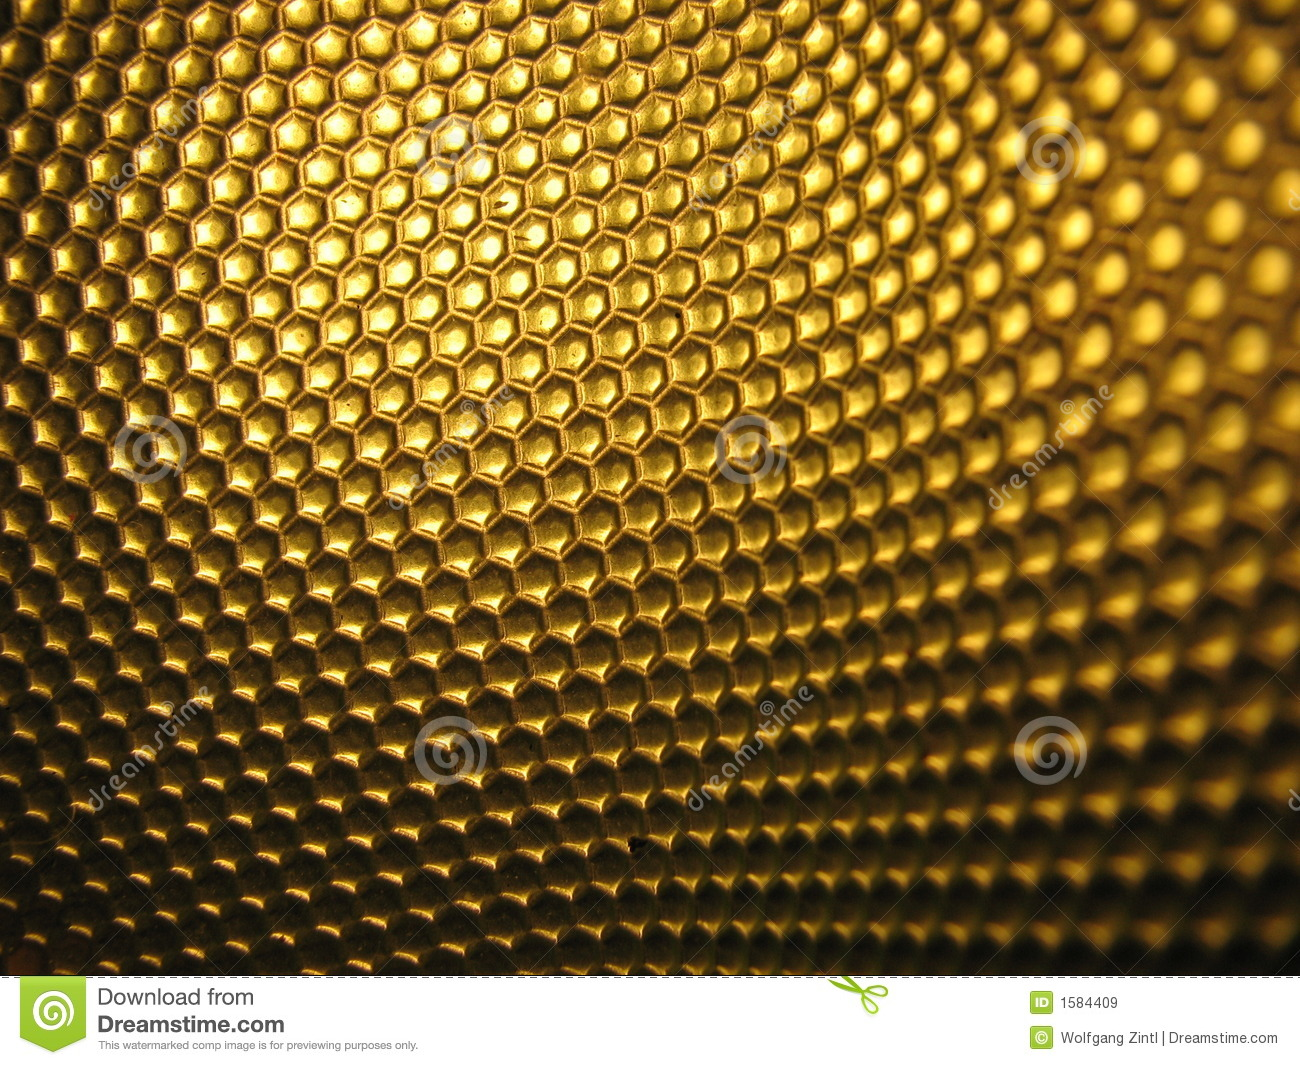 https://thumbs.dreamstime.com/z/bee-hive-background-2-1584409.jpg